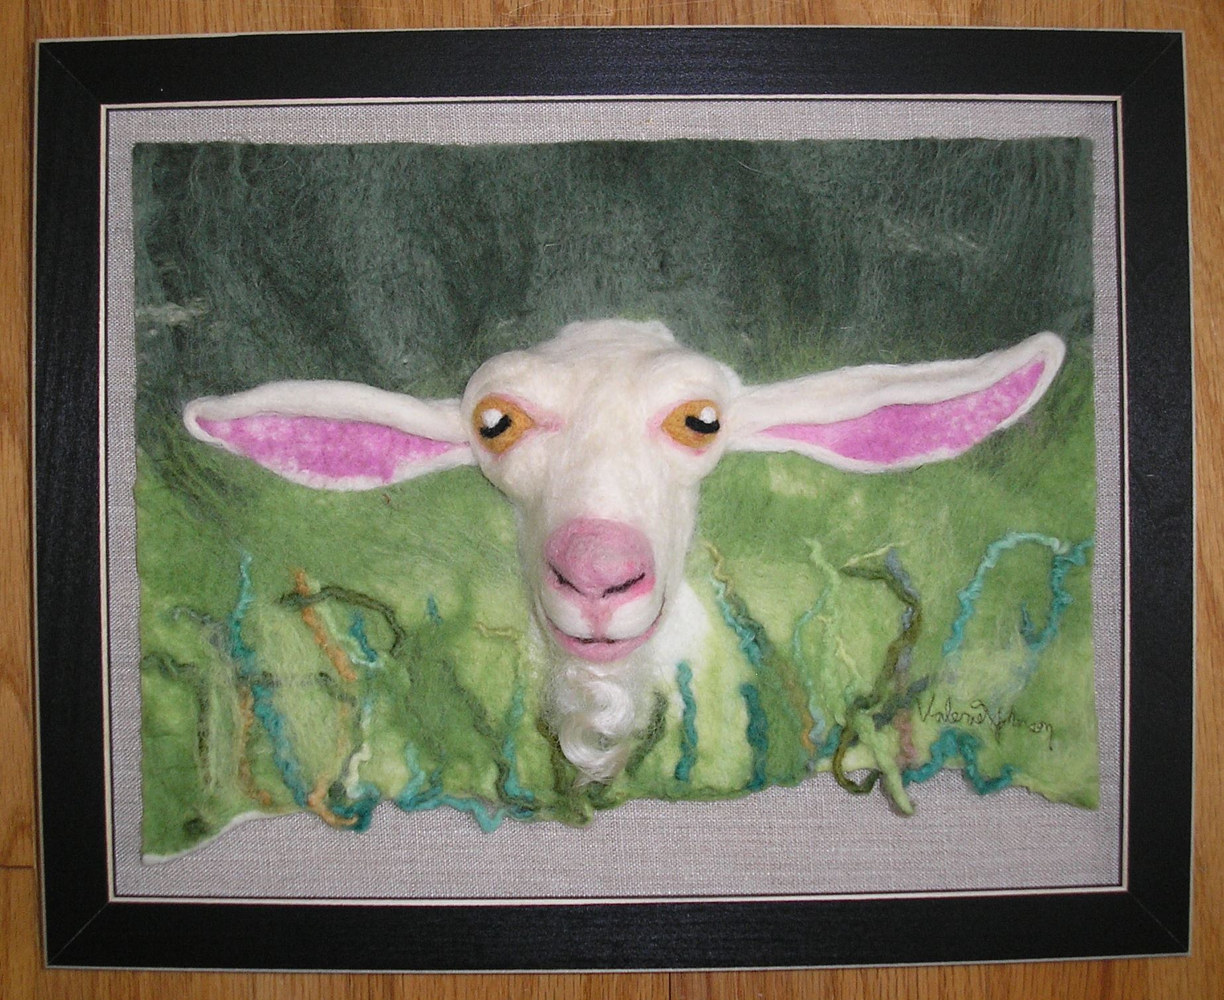 Yoda Goat by Valerie Johnson